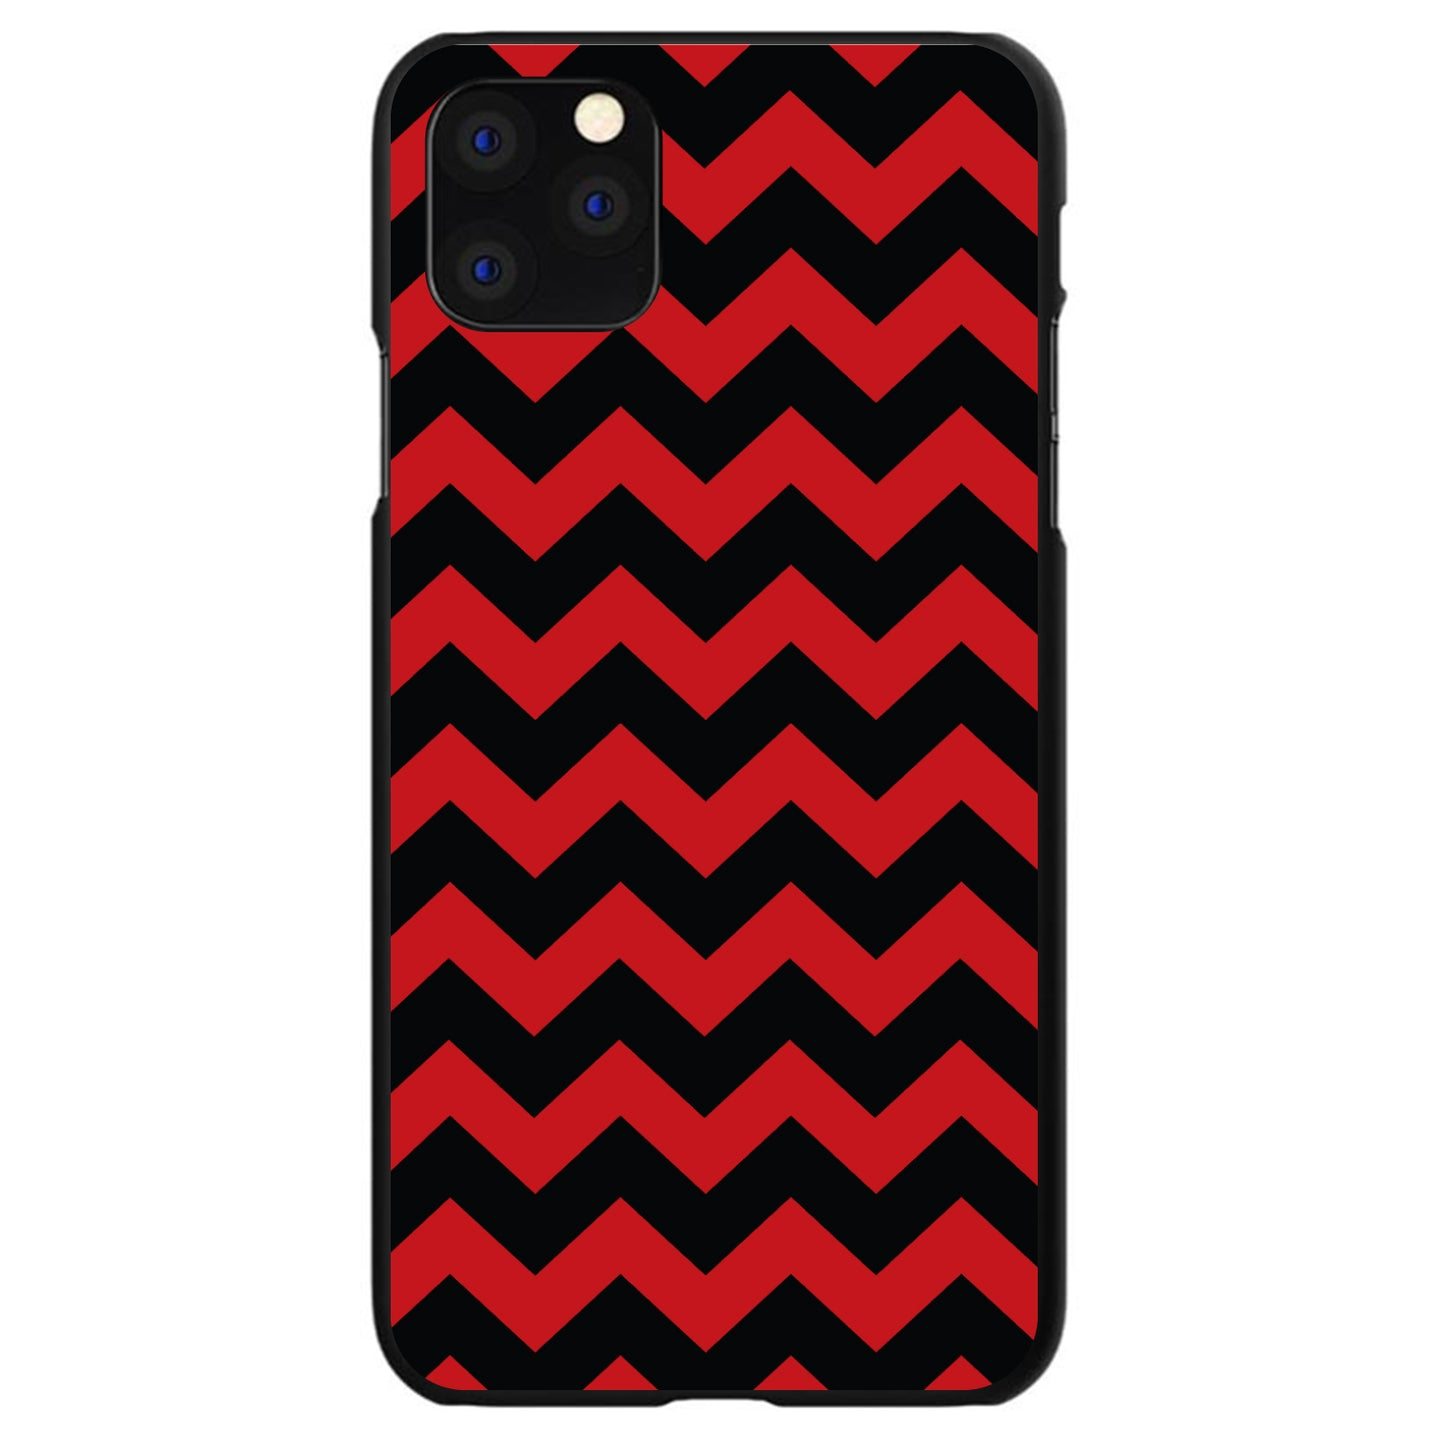 DistinctInk® Hard Plastic Snap-On Case for Apple iPhone - Black Red Chevron Stripes